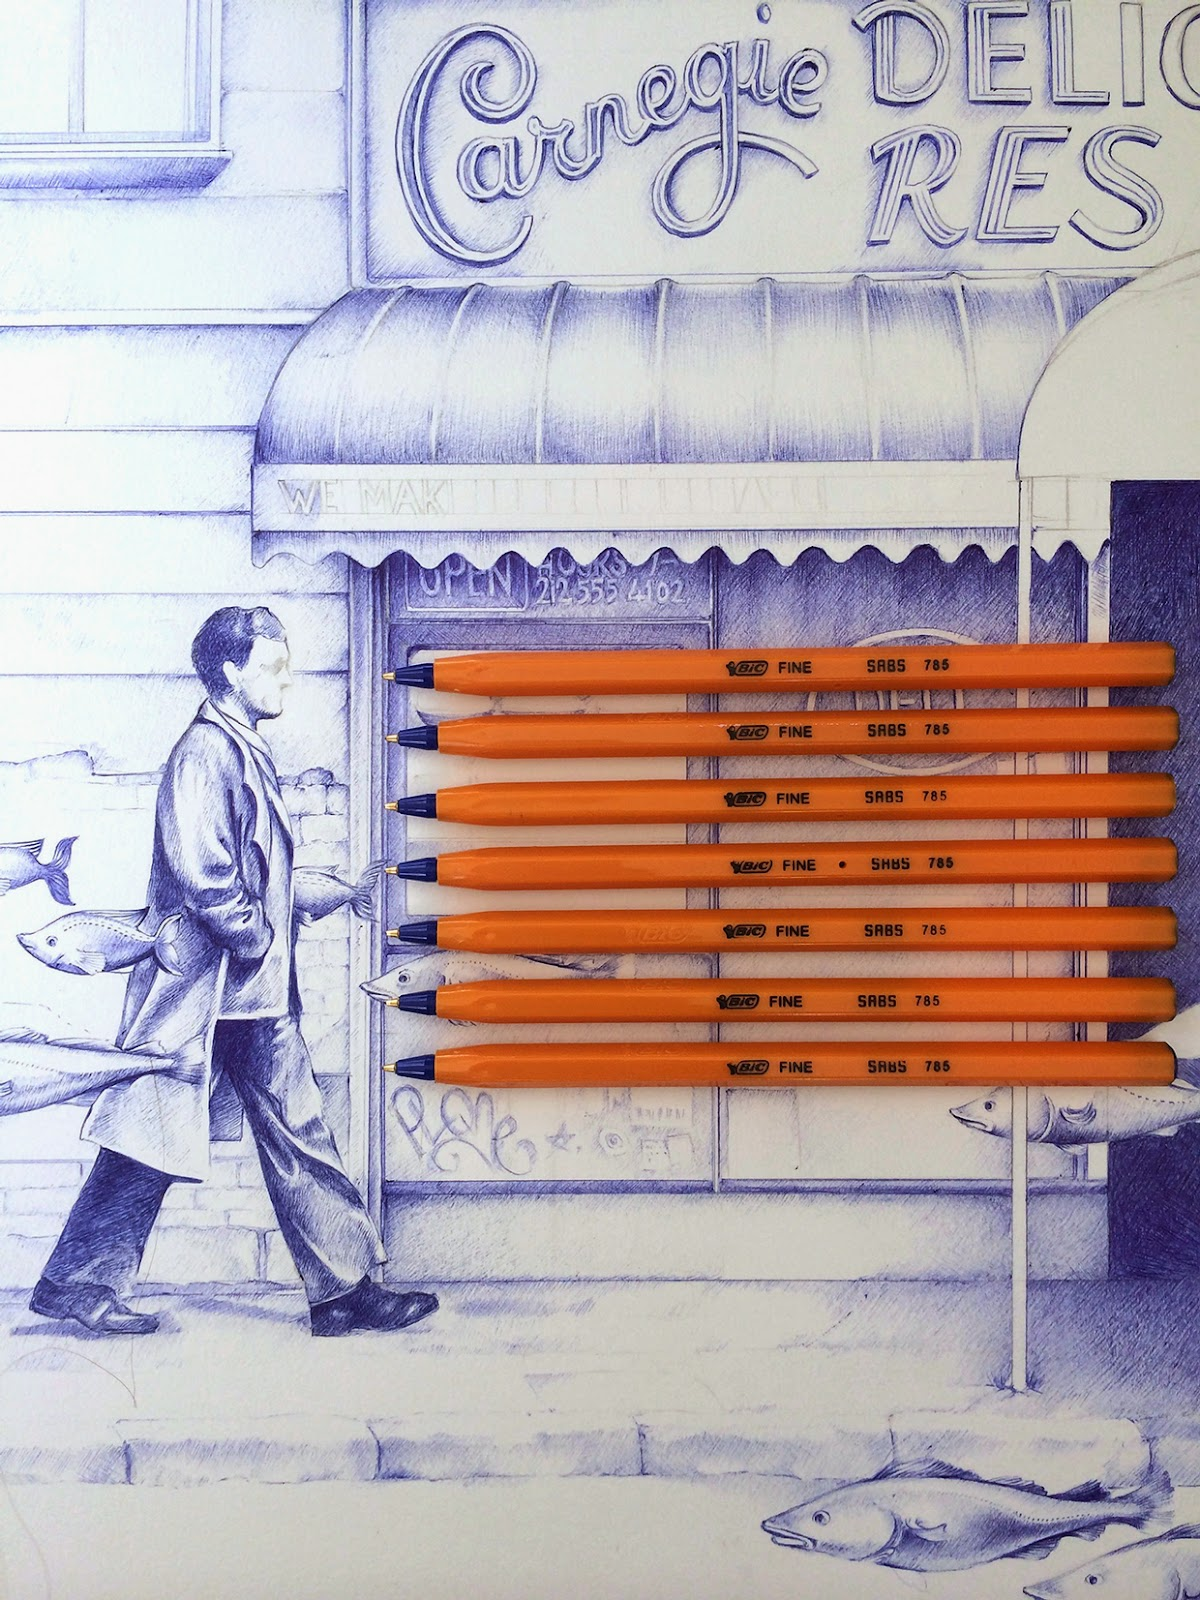 03-A-Sunday-on-55th-Street-Dani-Loureiro-Zero-Gravity-Ballpoint-Pen-Drawings-www-designstack-co